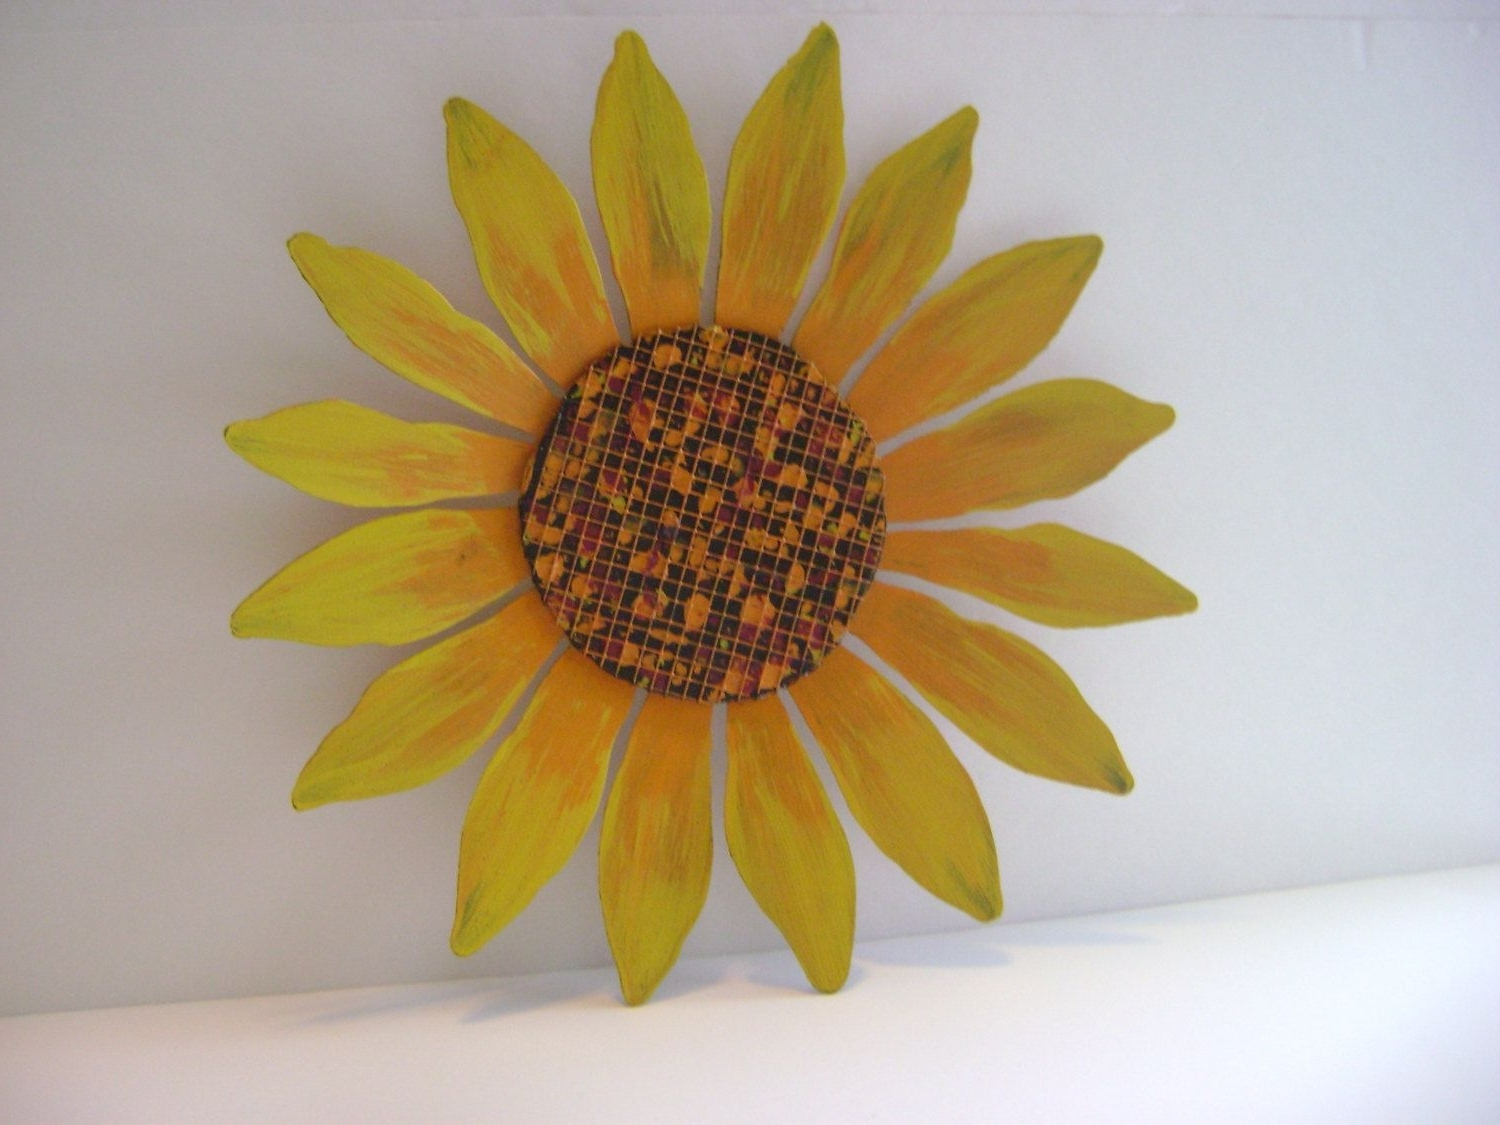 Sunflower Wall Art Pertaining To Best And Newest Yellow / Orange Sunflower Wall Art, Sculptured Metal Garden Art (View 14 of 20)